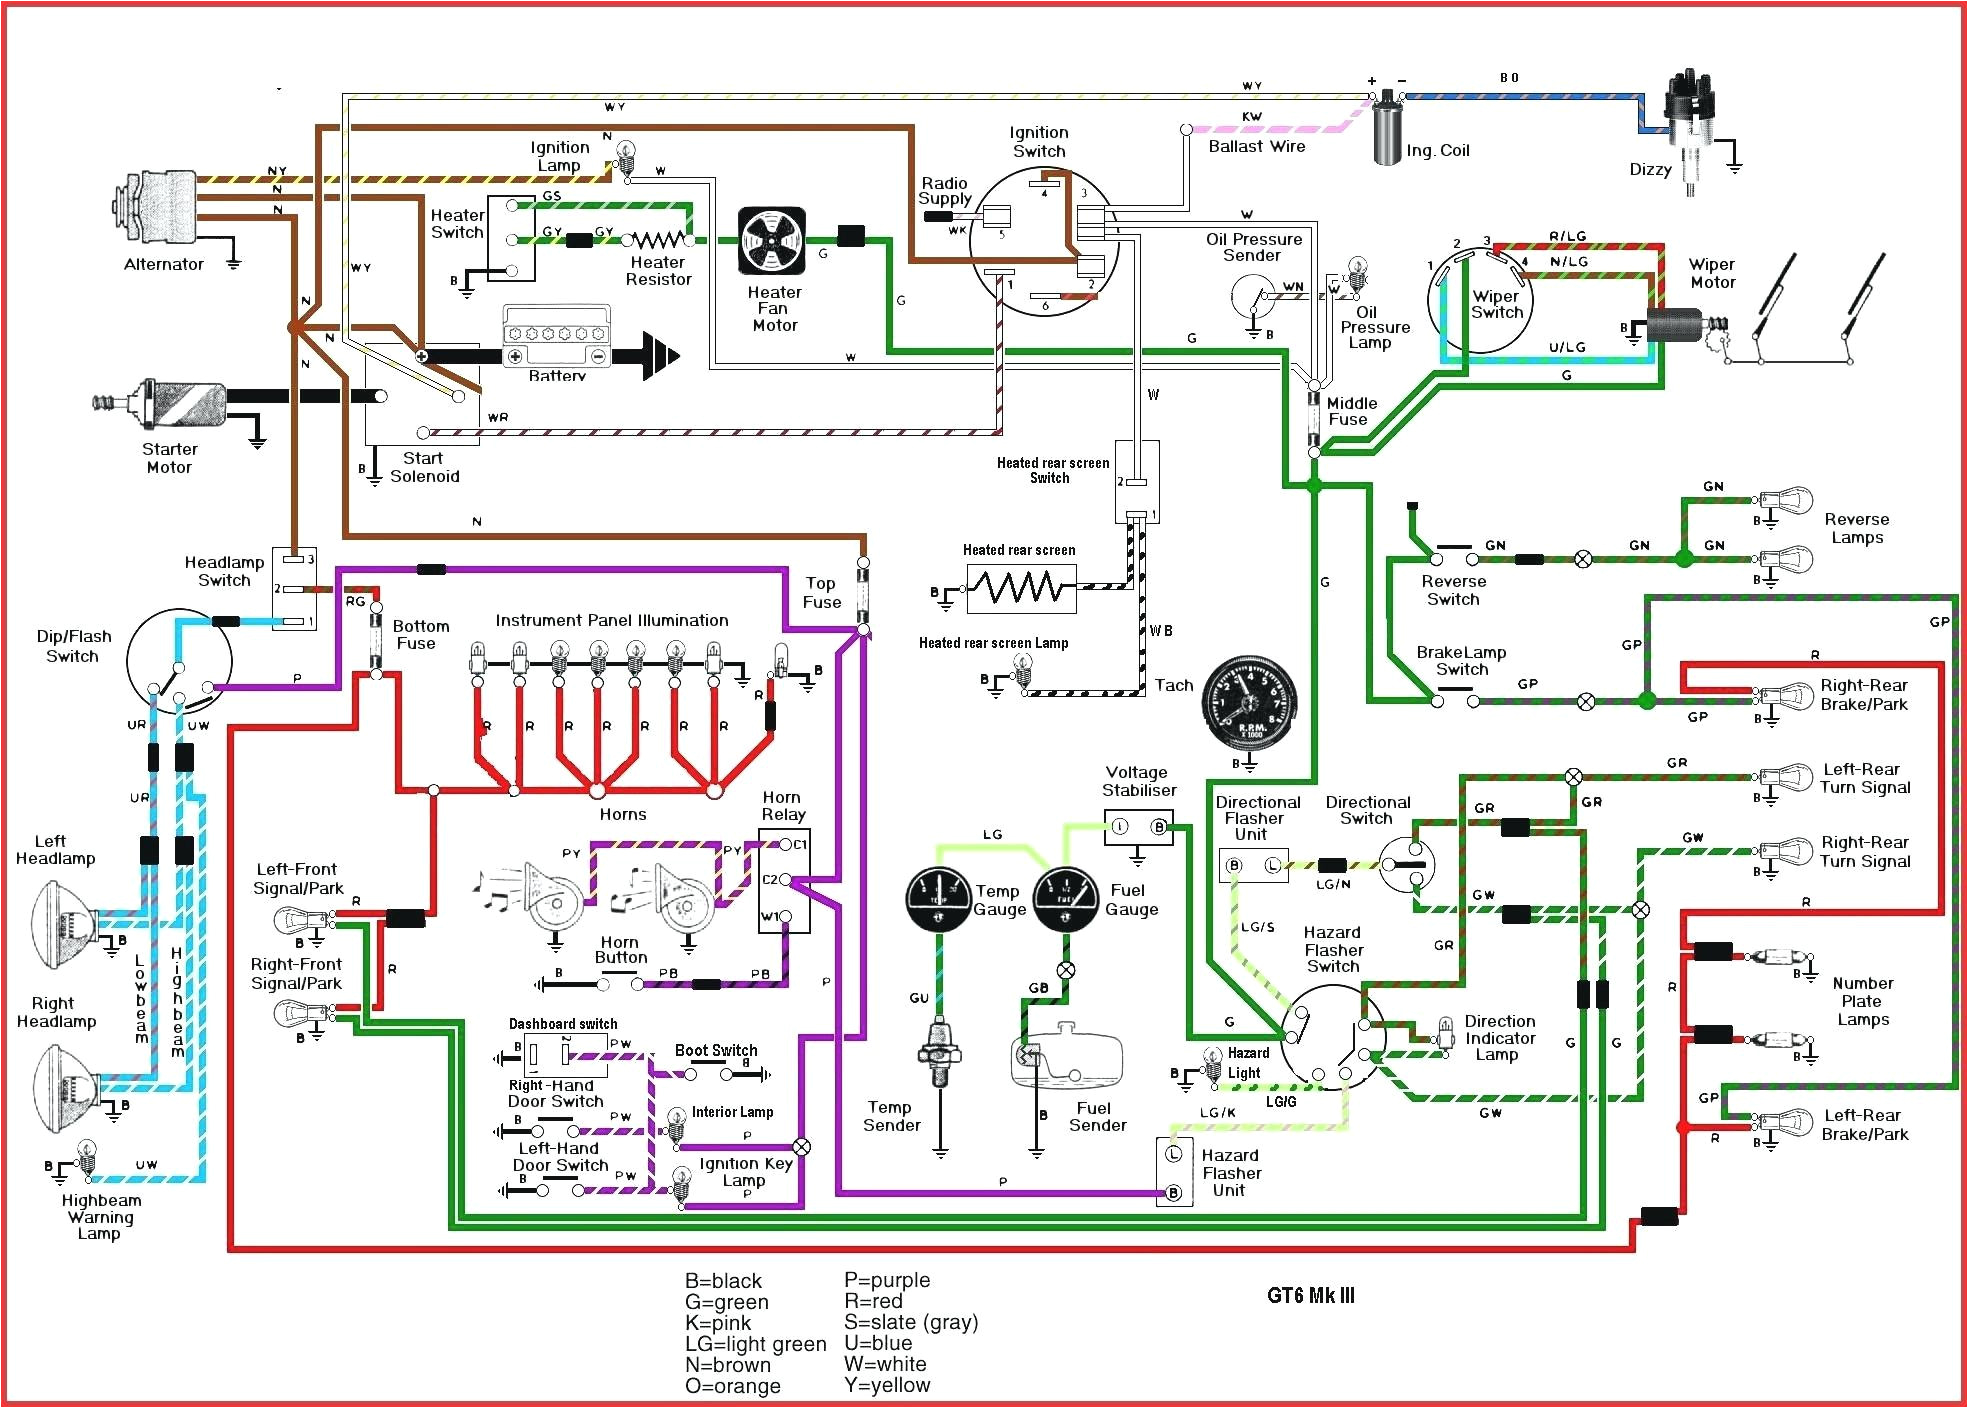 wiring diagrams for houses pdf new wiring diagram mix electrical wiring for house pdf wiring diagram